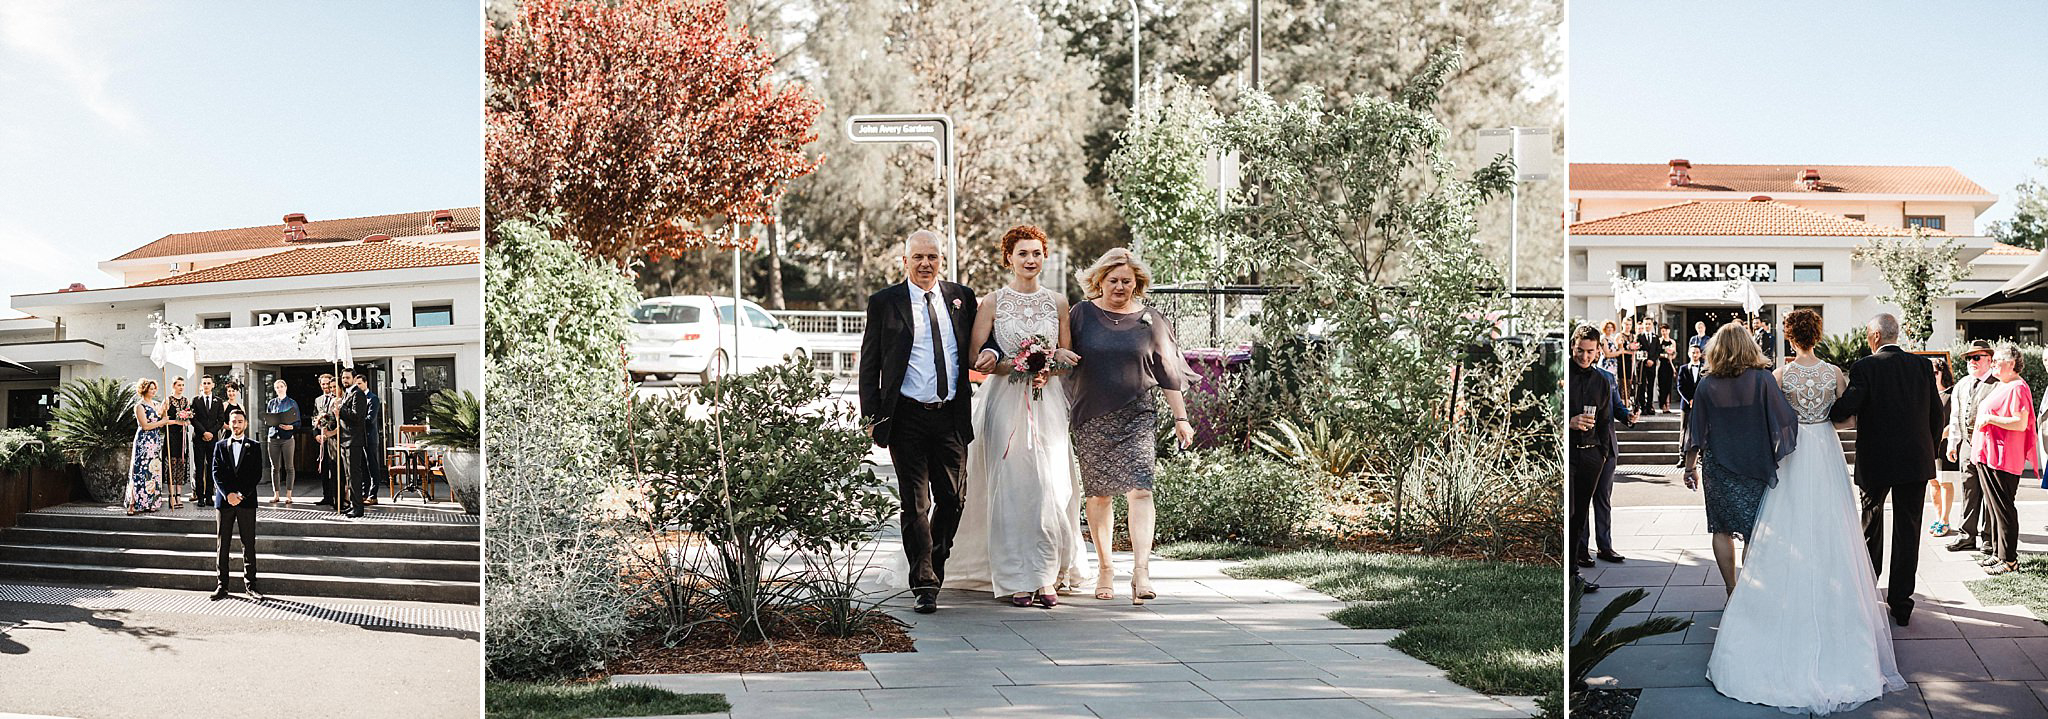 rustic wedding venues canberra